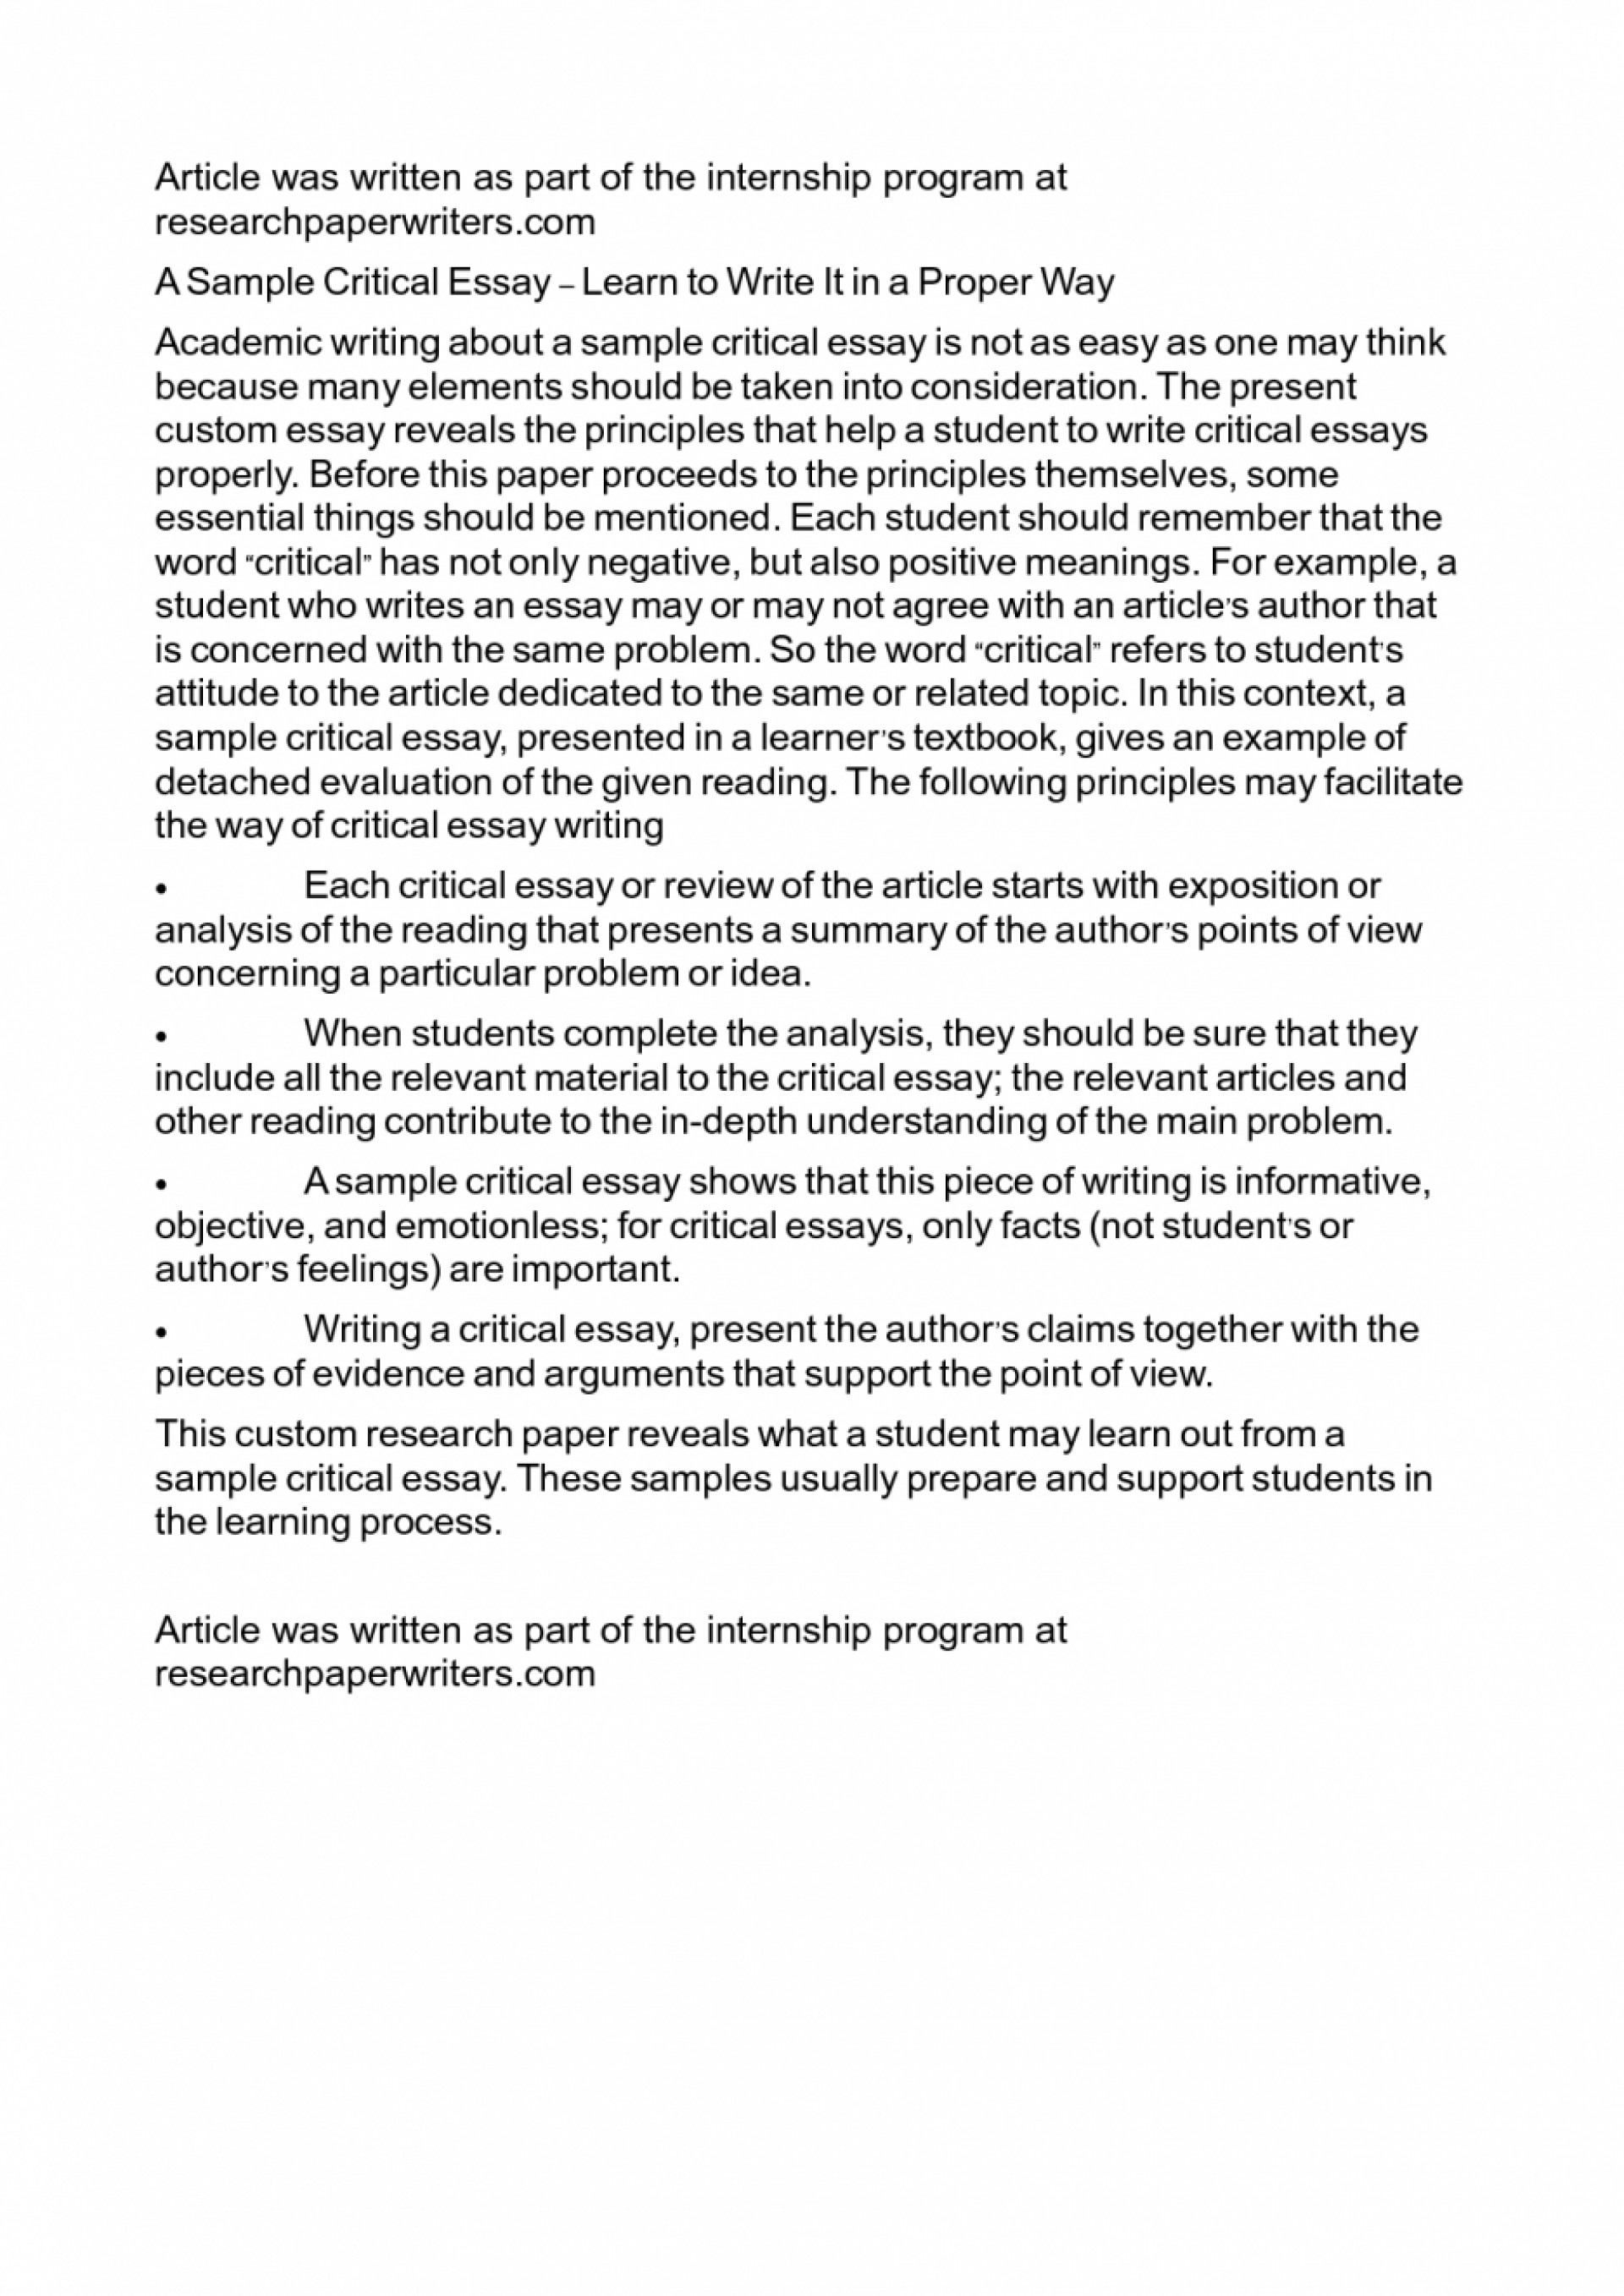 014 Essay Example Easy Writing How Write Essays Pics Ways Argumentative General Picnic Party Topic Rainy Day As Sayings Typer On Gabby Douglas Sample Movie Does It Prompts Road Excellent Way To An Analytical In Ielts Task 2 1920